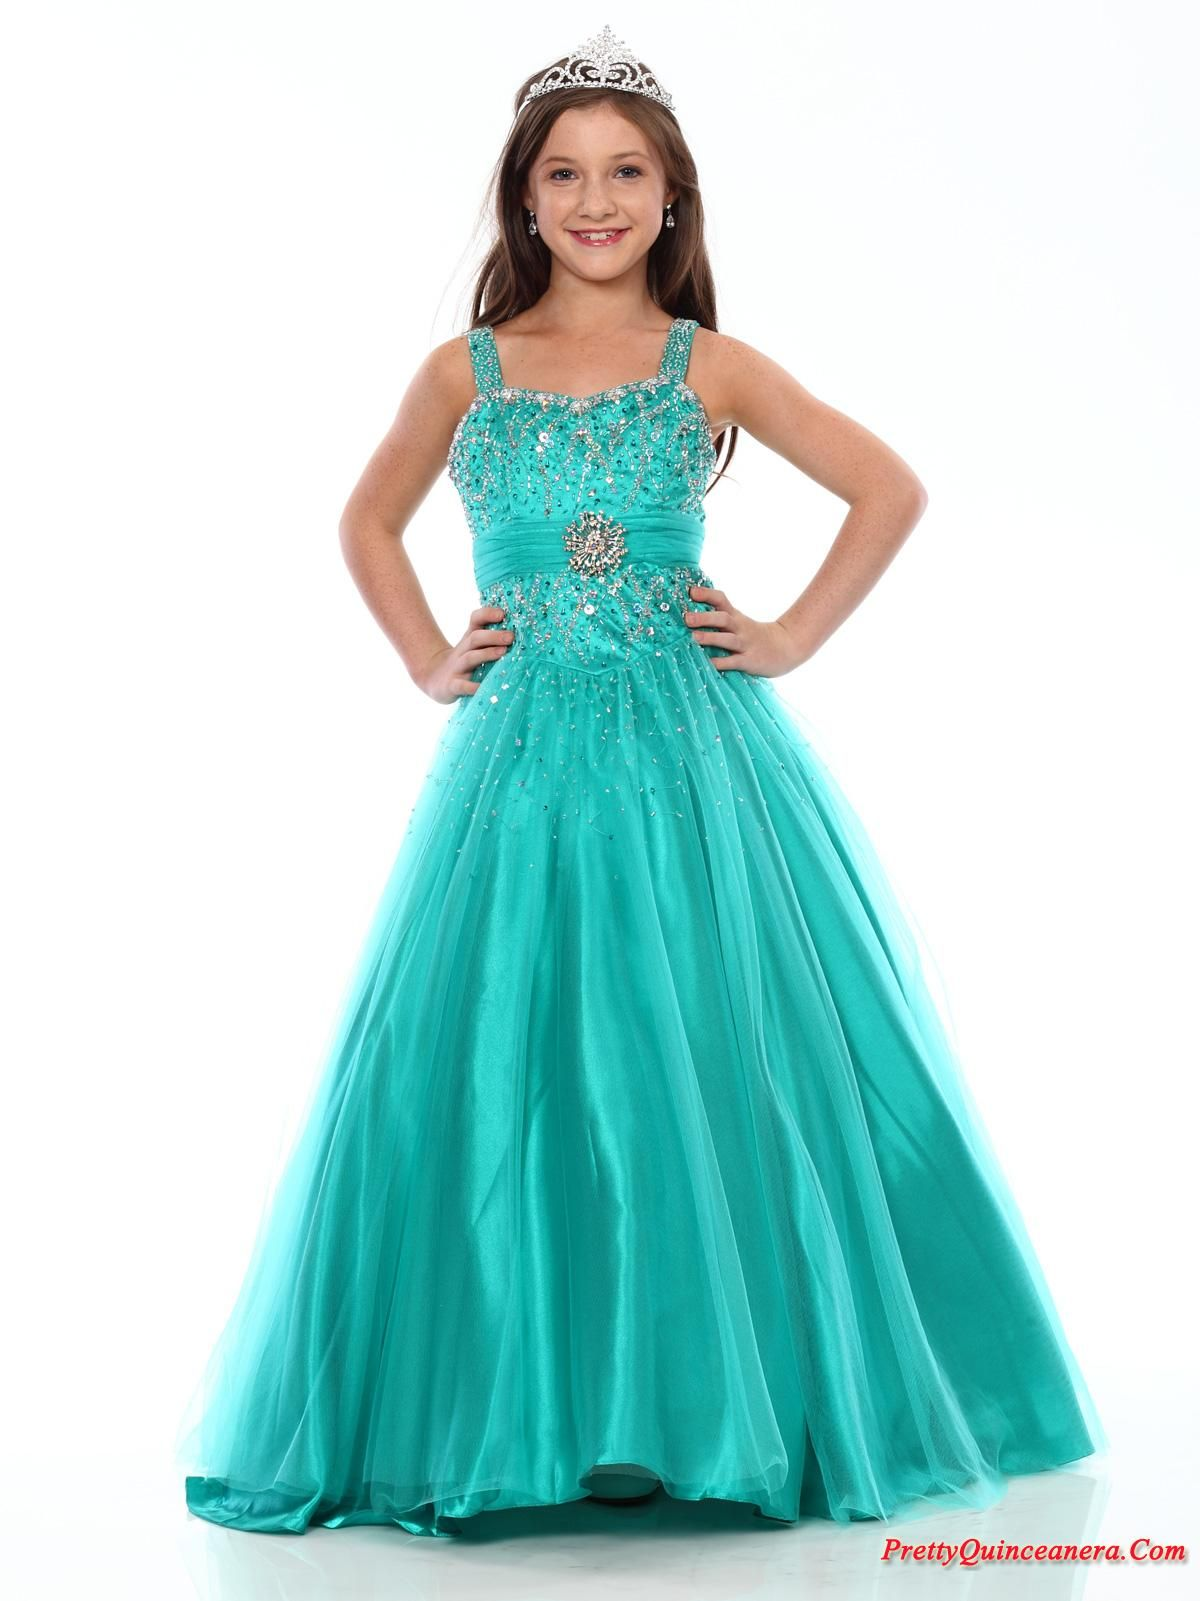 Dresses For Little Girls | little girl birthday Pageant dresses ...